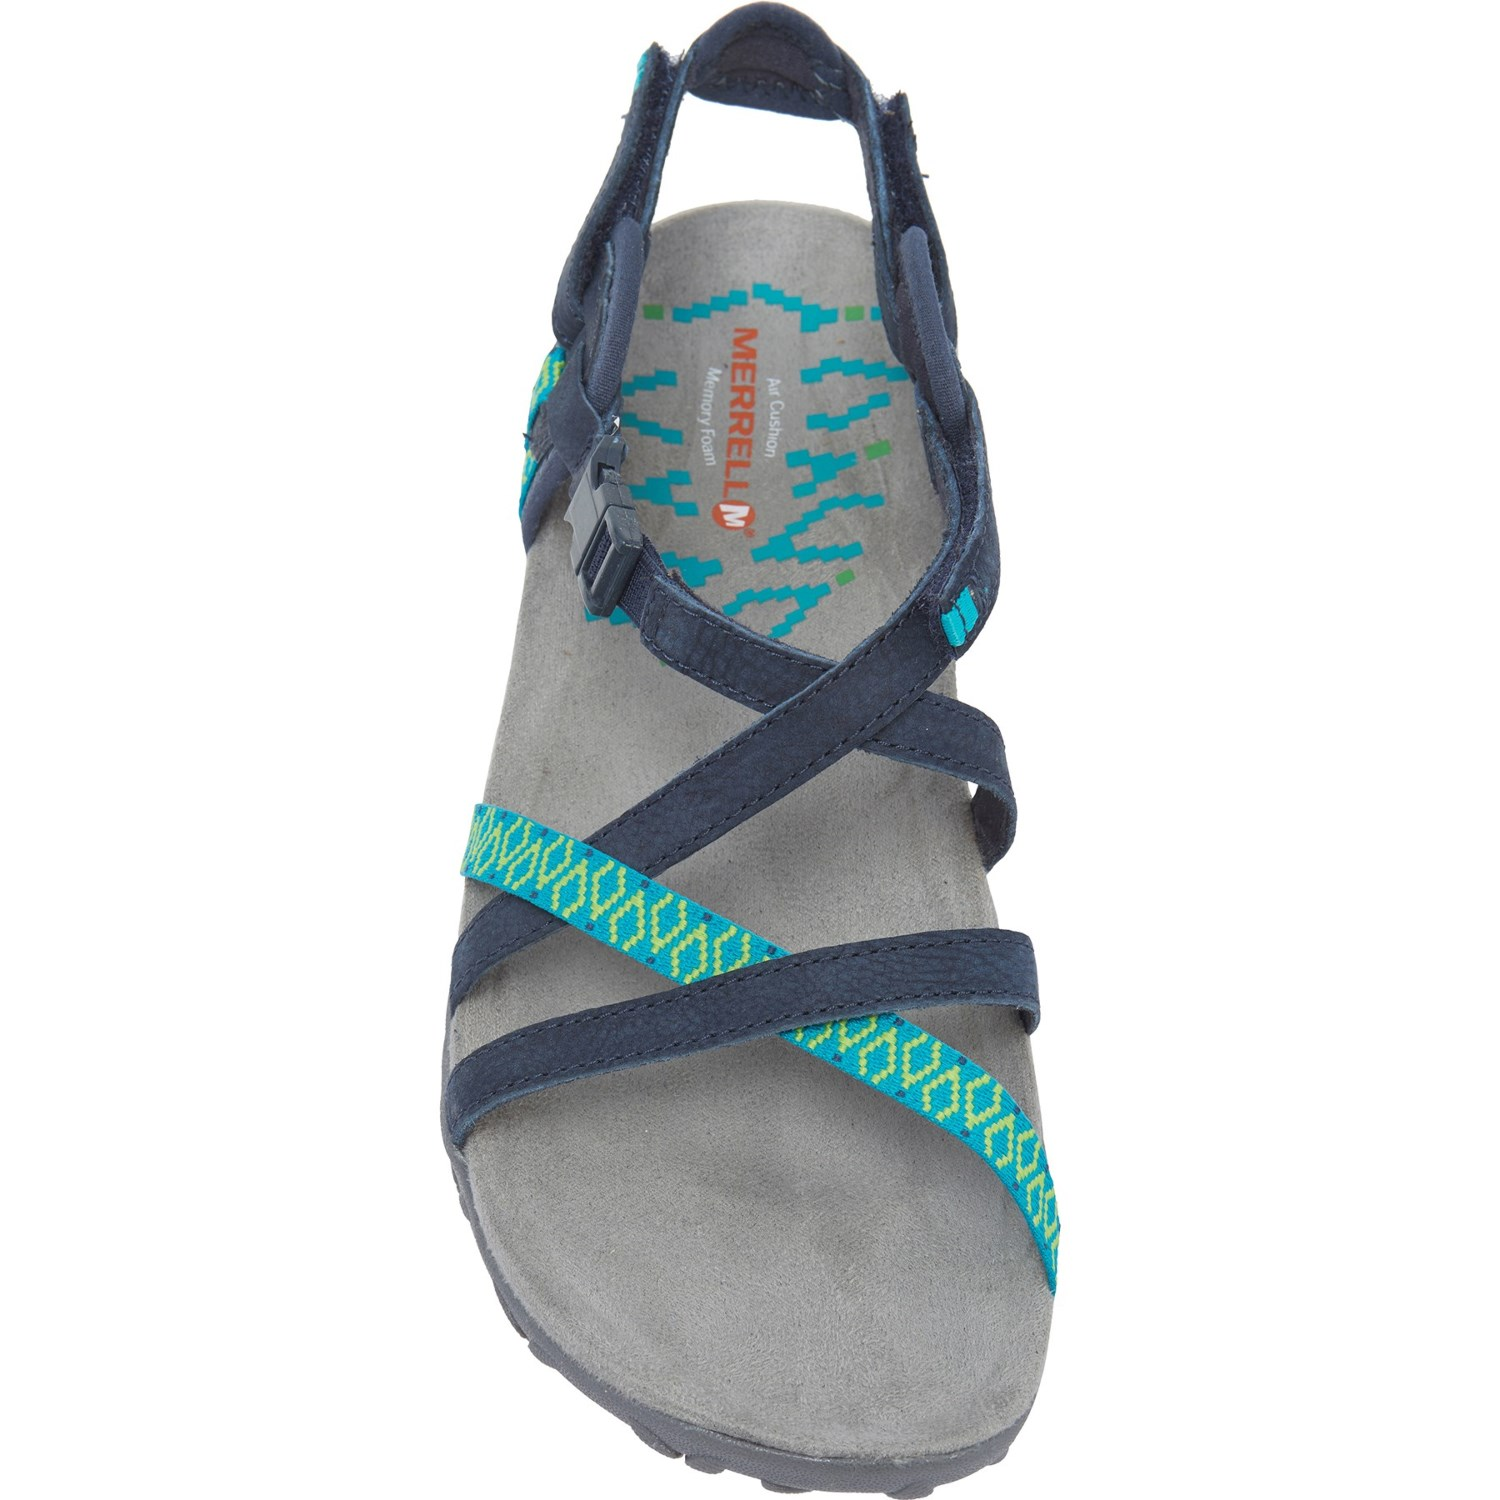 19168dbbca97 Merrell Terran Lattice II Sandals (For Women) - Save 32%